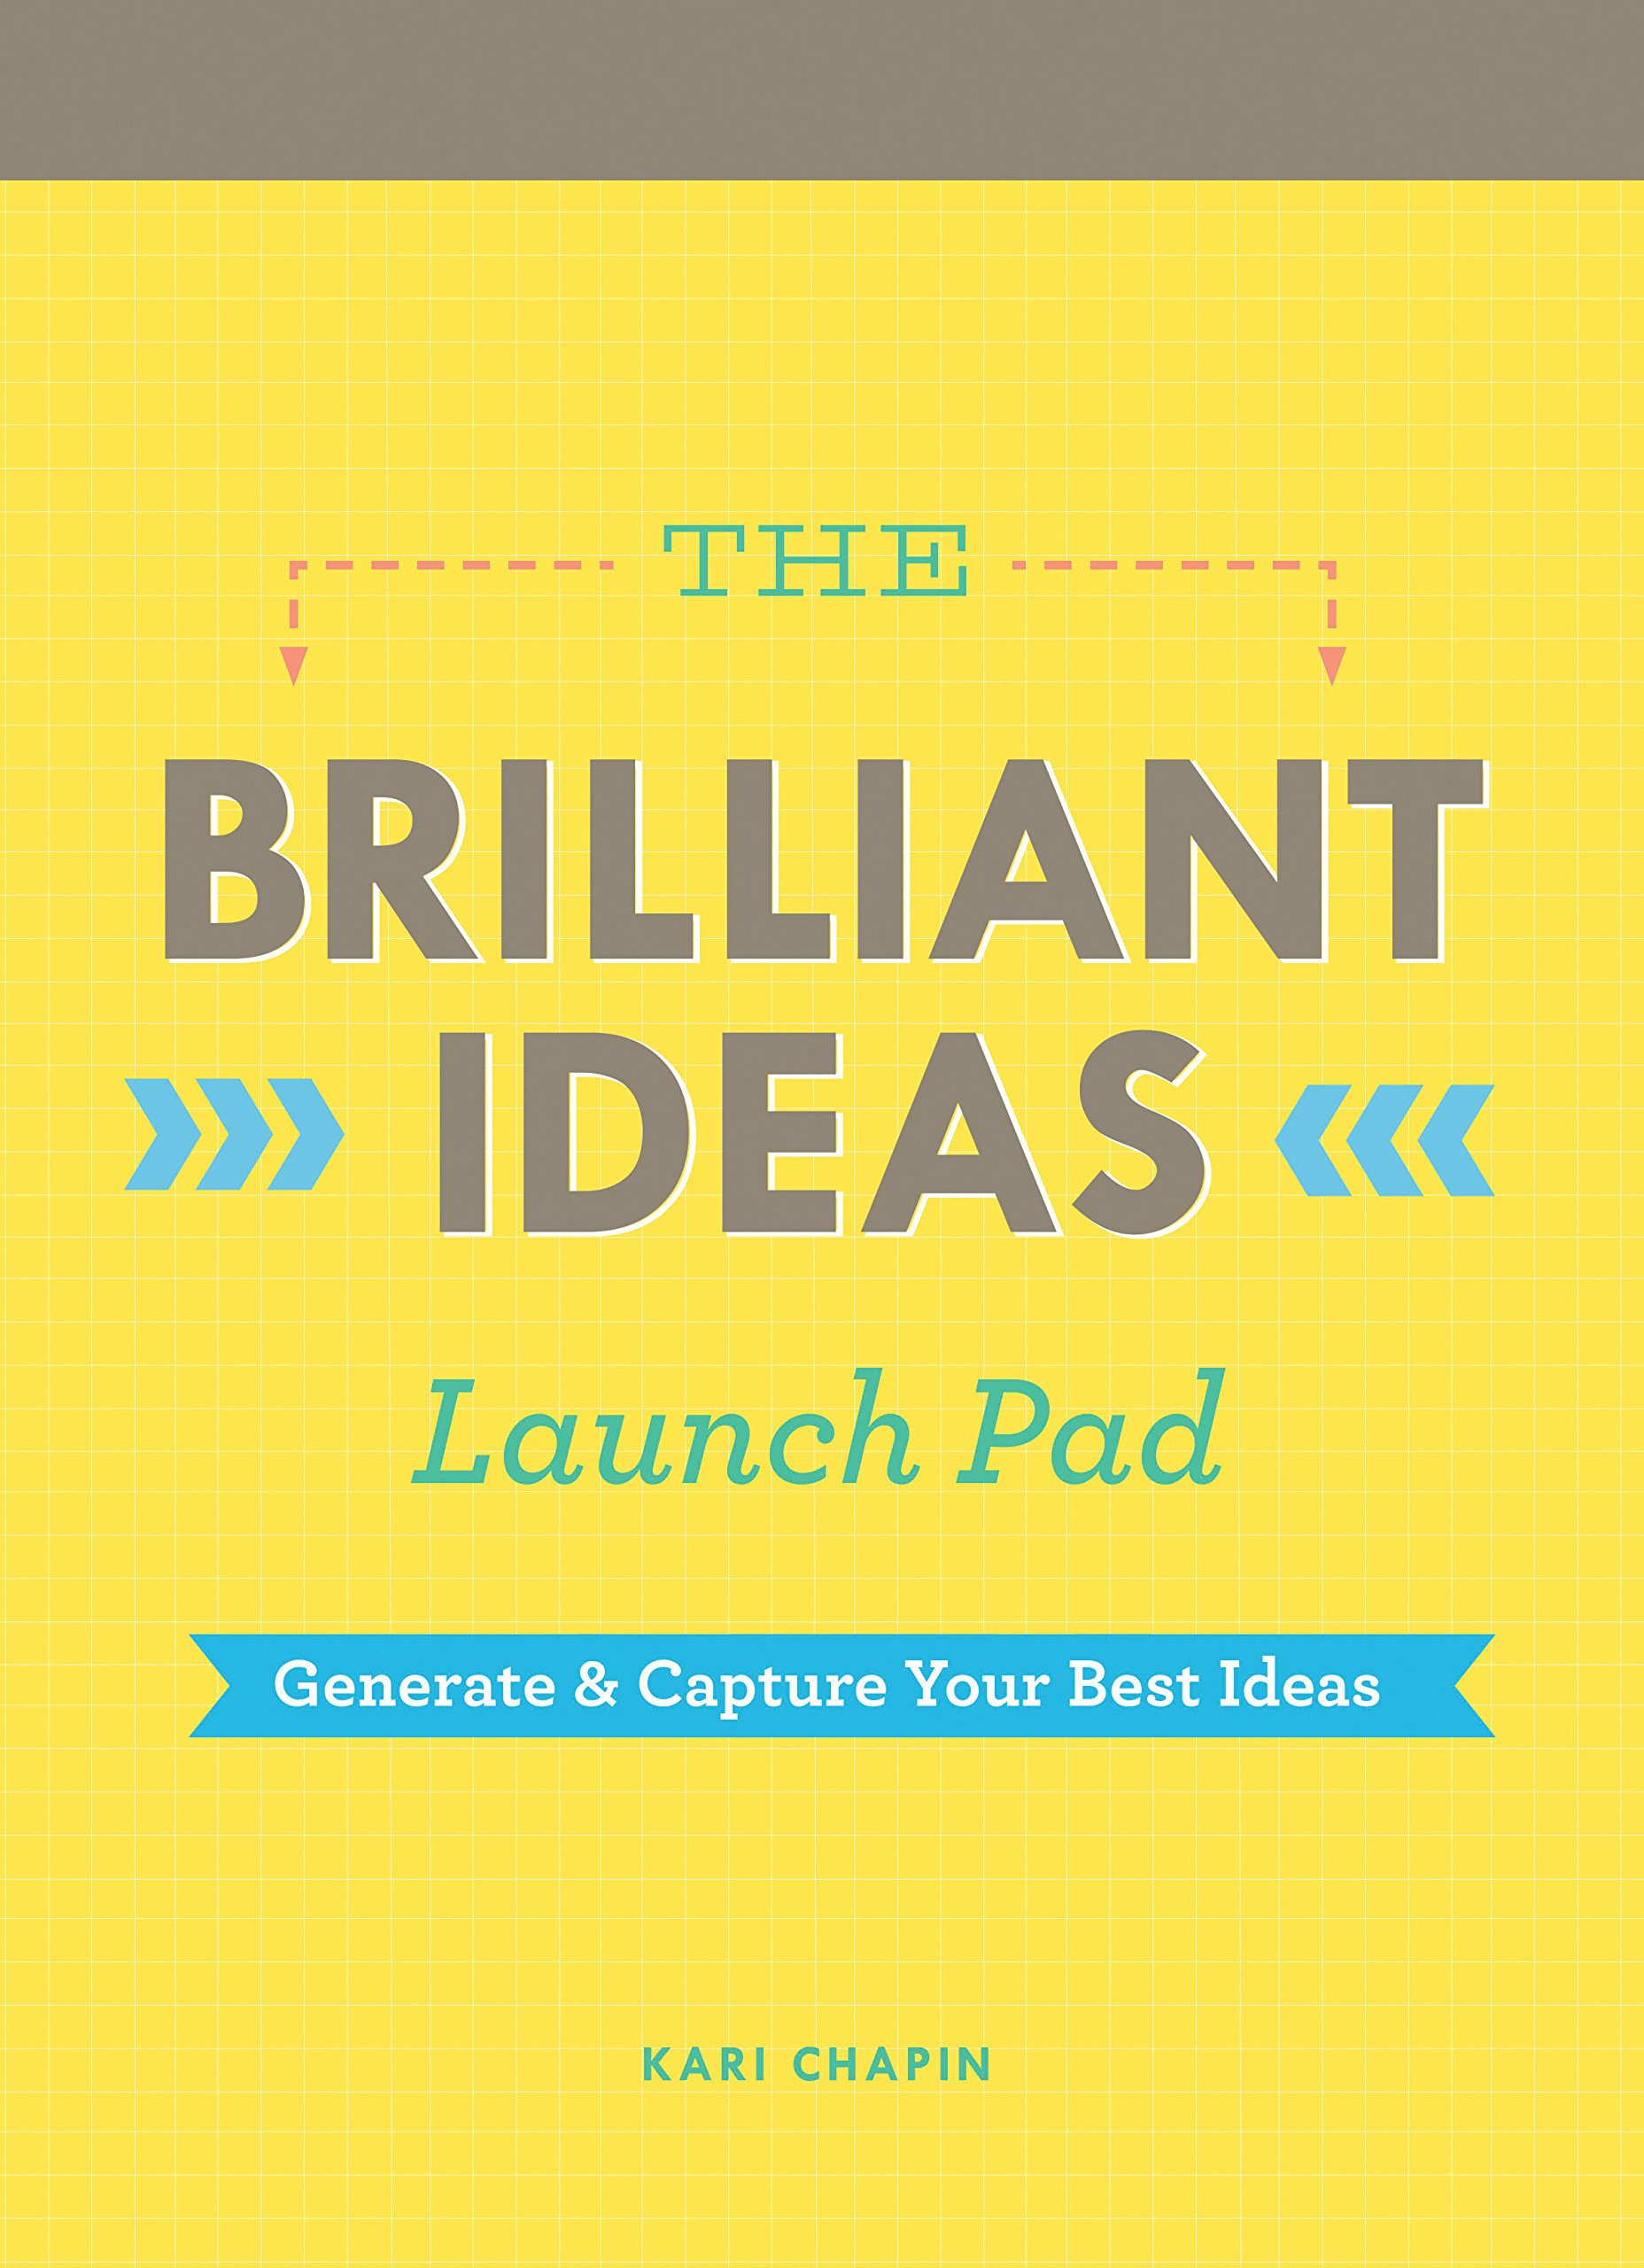 Image OfThe Brilliant Ideas Launch Pad: Generate & Capture Your Best Ideas (Notepad For Kids, Teacher Notepad, Checklist Notepad)